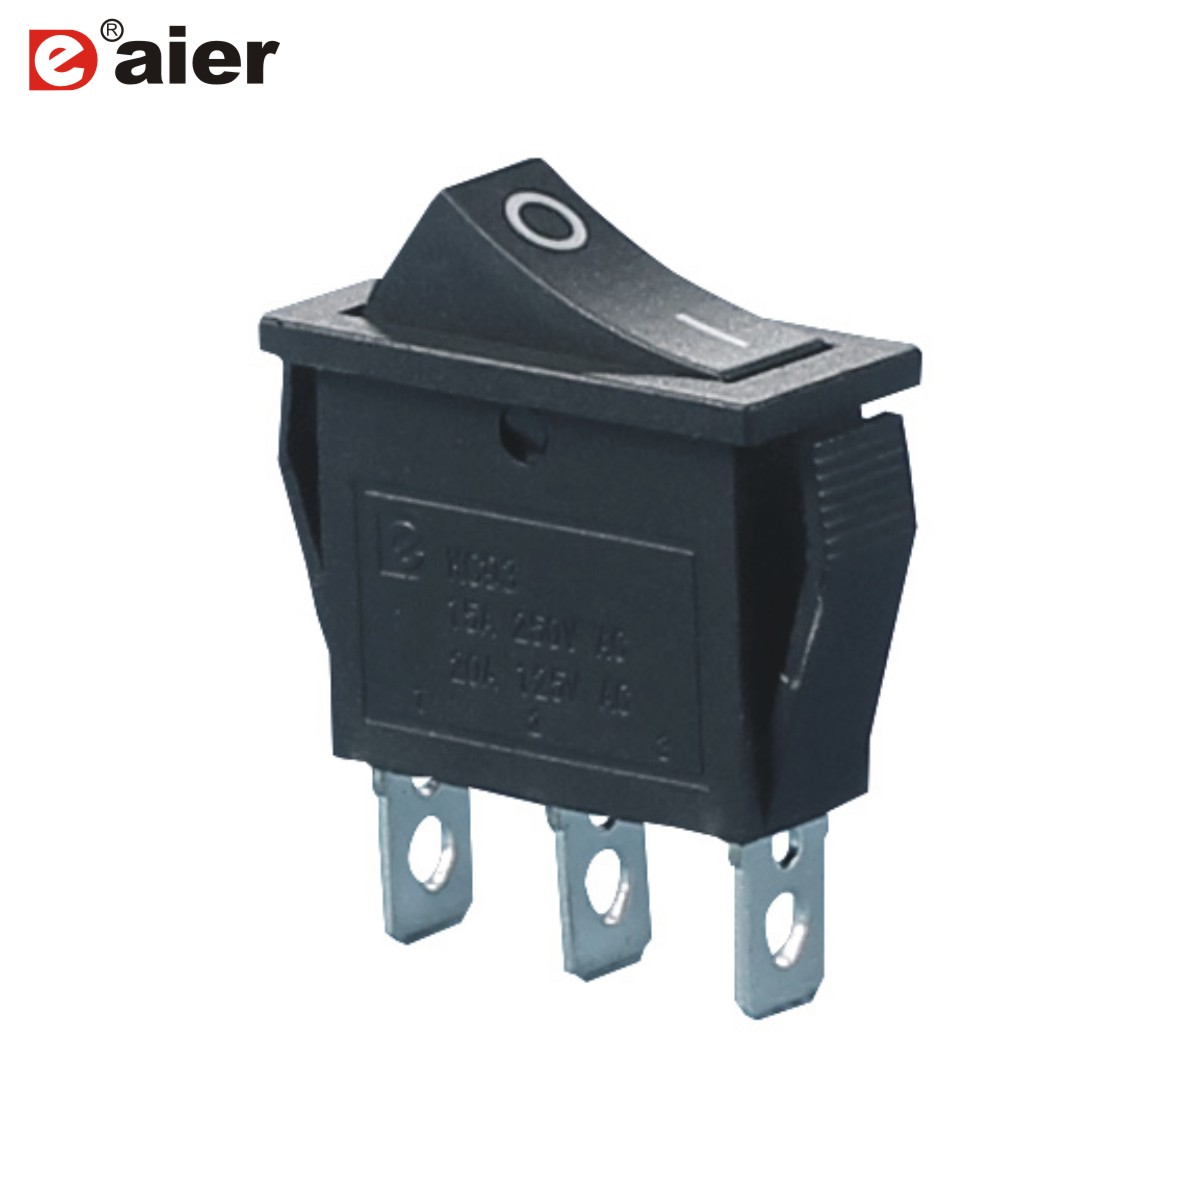 medium resolution of 5pcs on on 3 pins 2 position rocker switch t105 250v 15 amp spdt 10 28mm 20a 125vac switches single pole without light